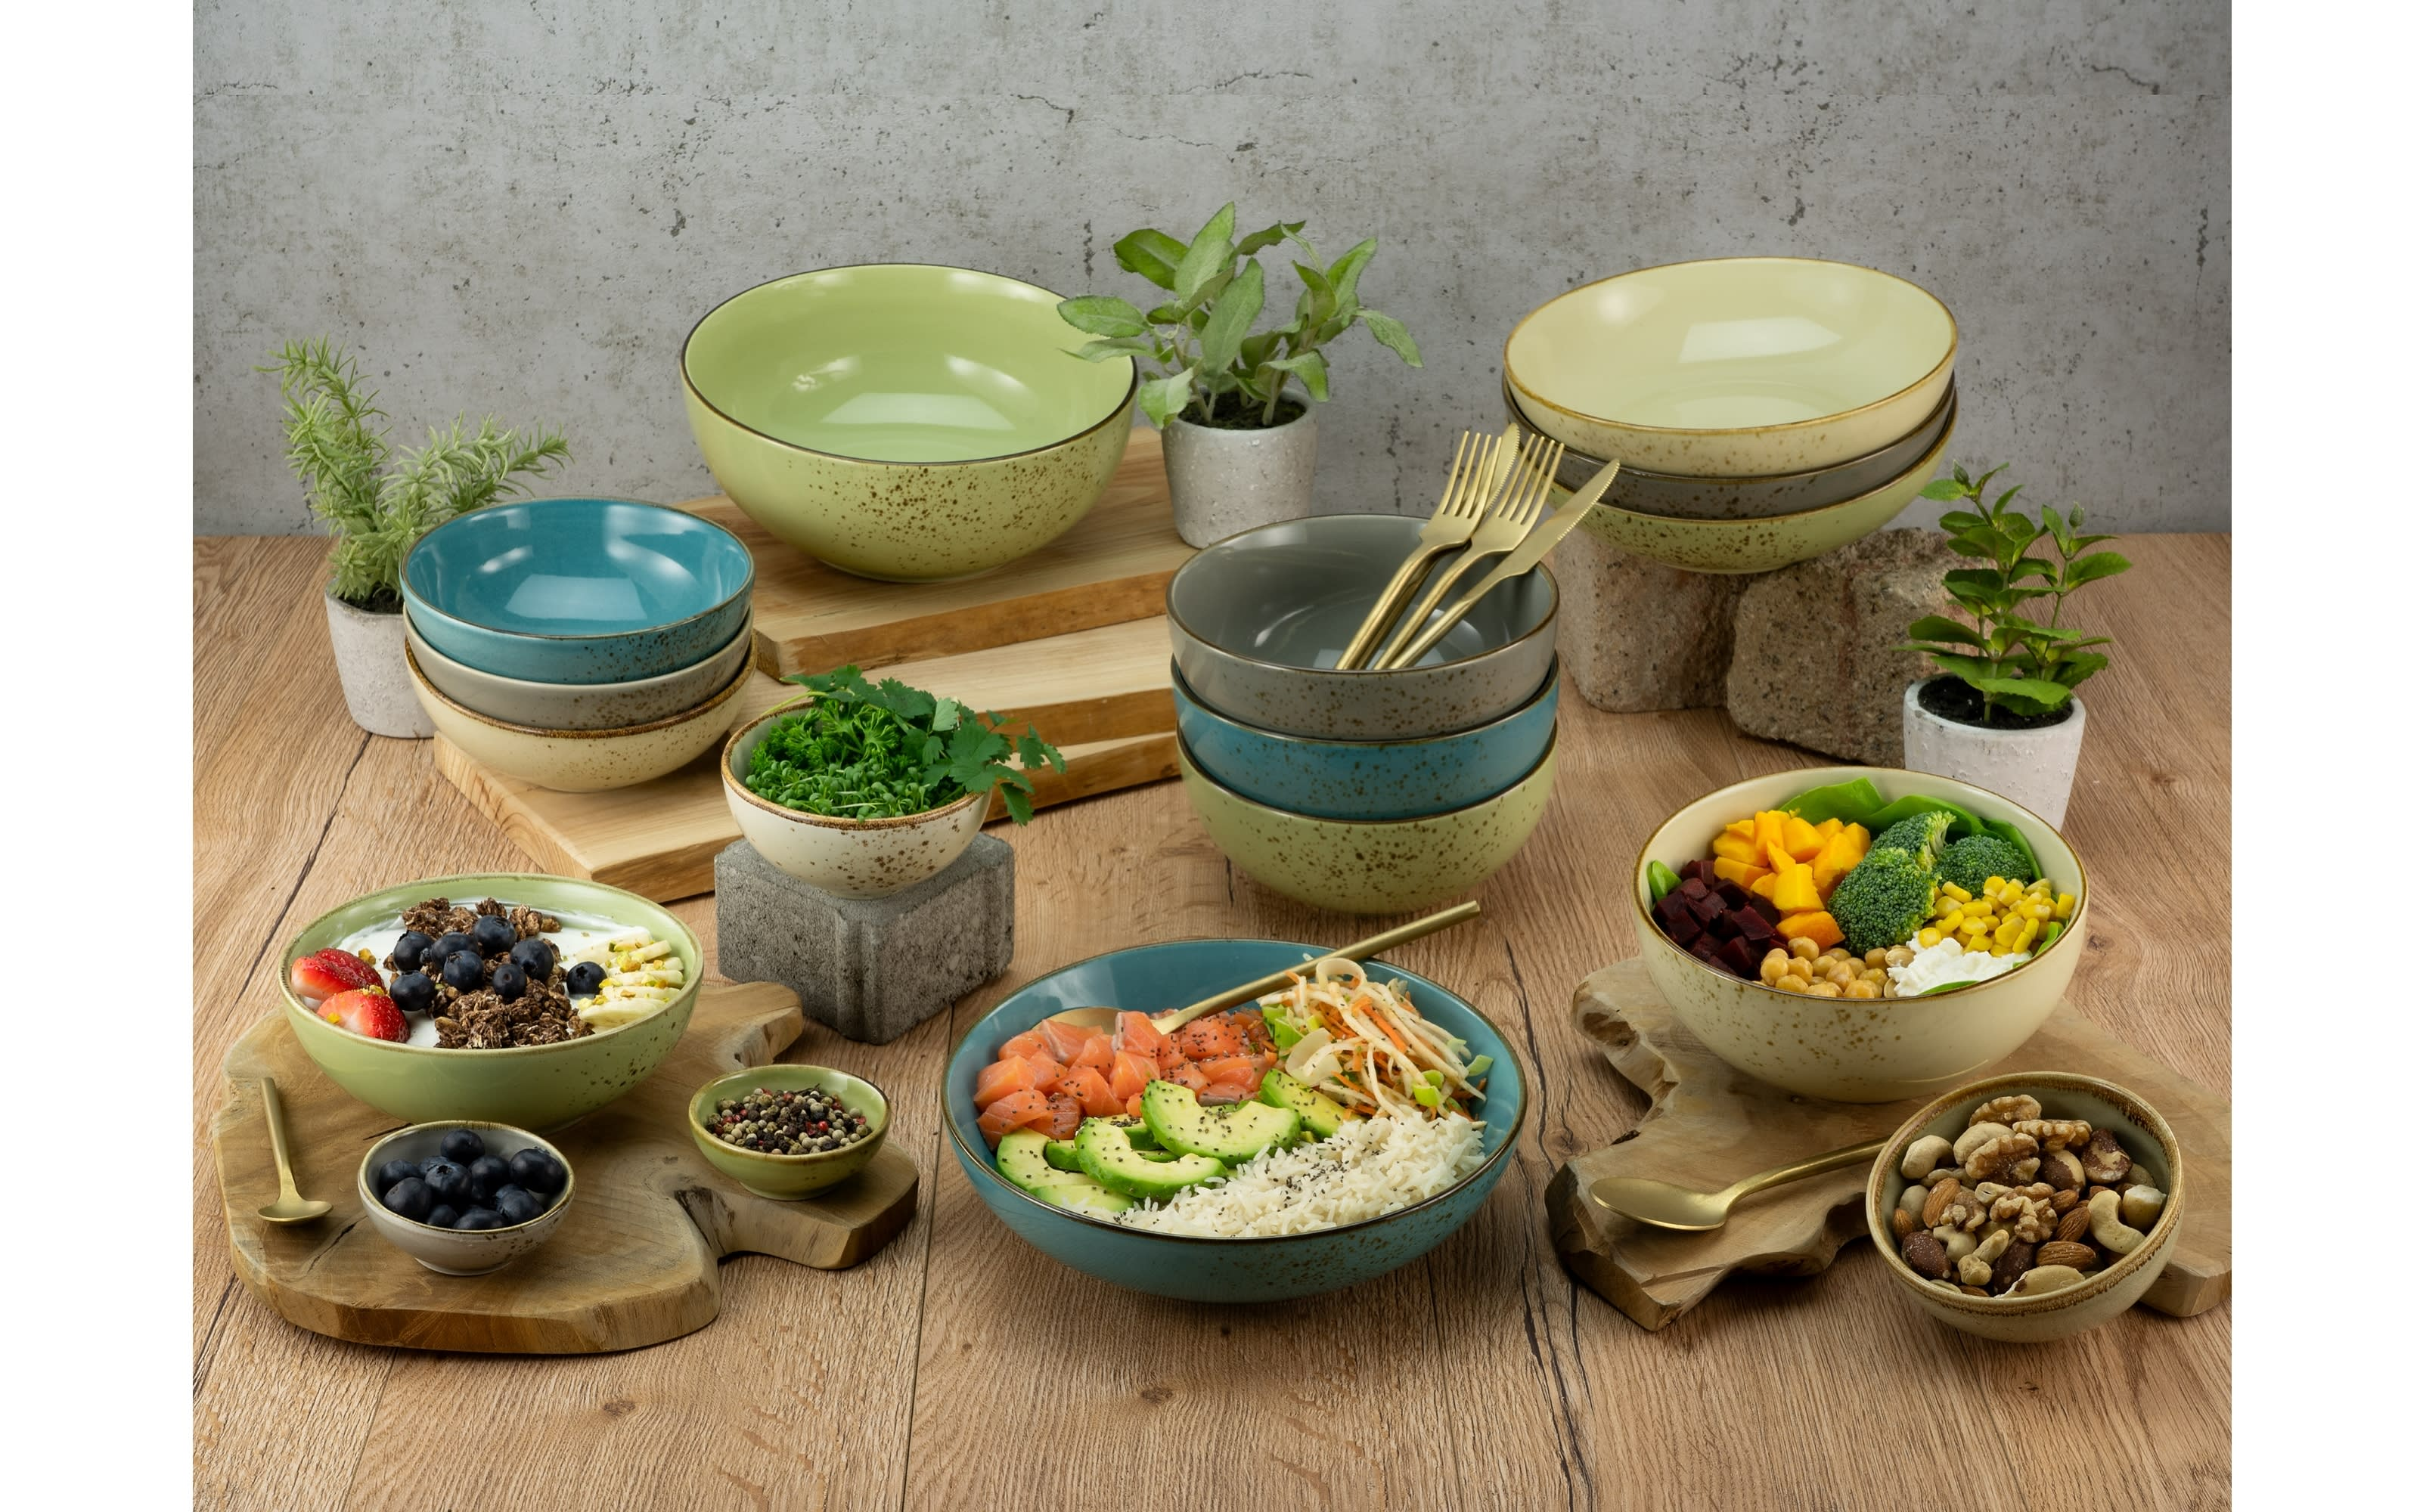 Poke Bowl Nature Collection in steingrau, 22,5 cm